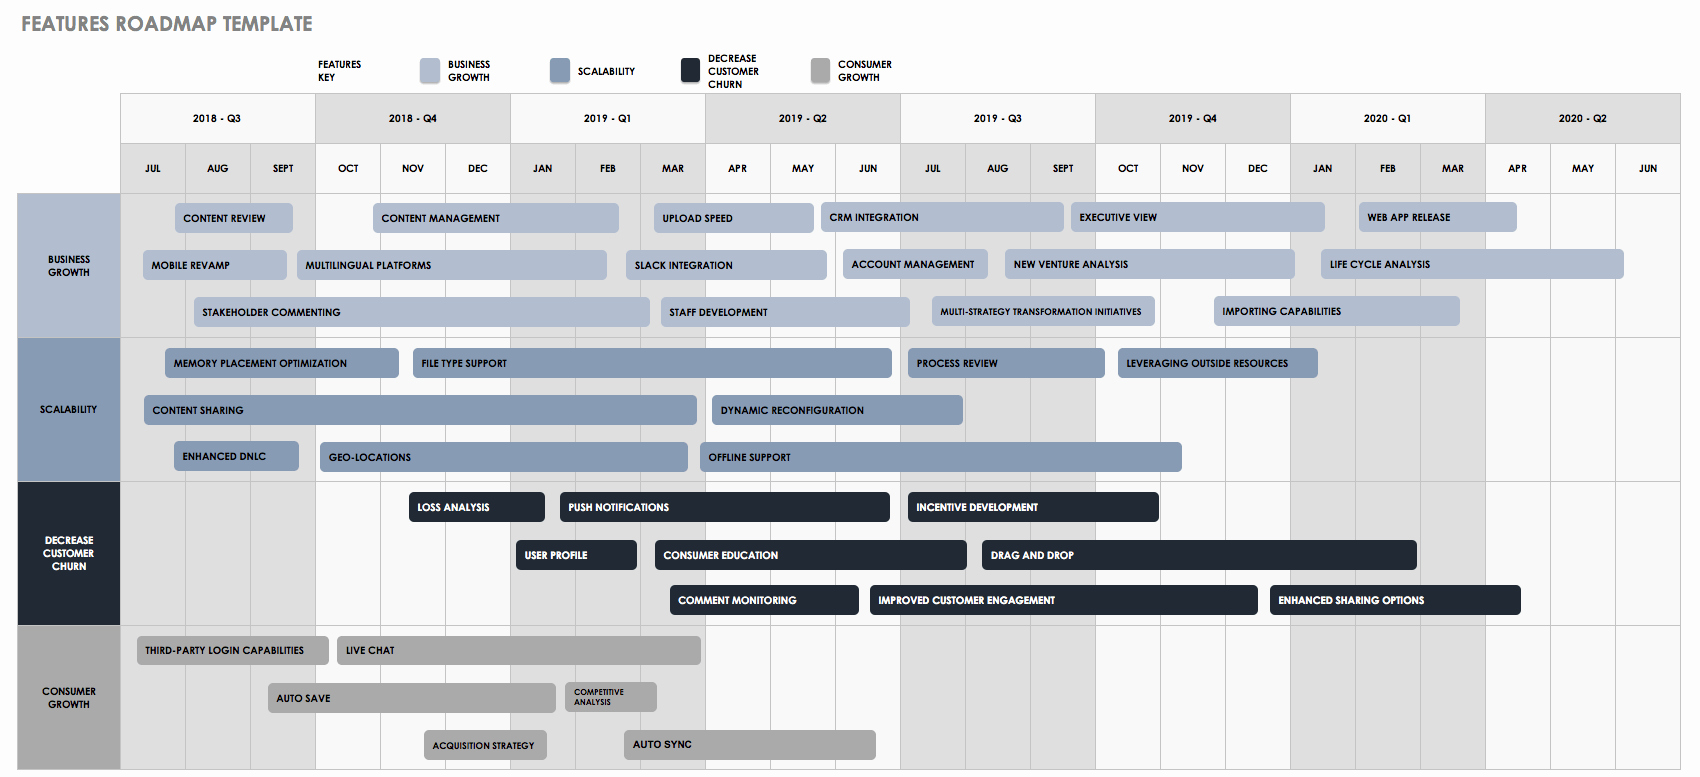 Roadmap Template Excel Free Download Lovely Free Product Roadmap Templates Smartsheet